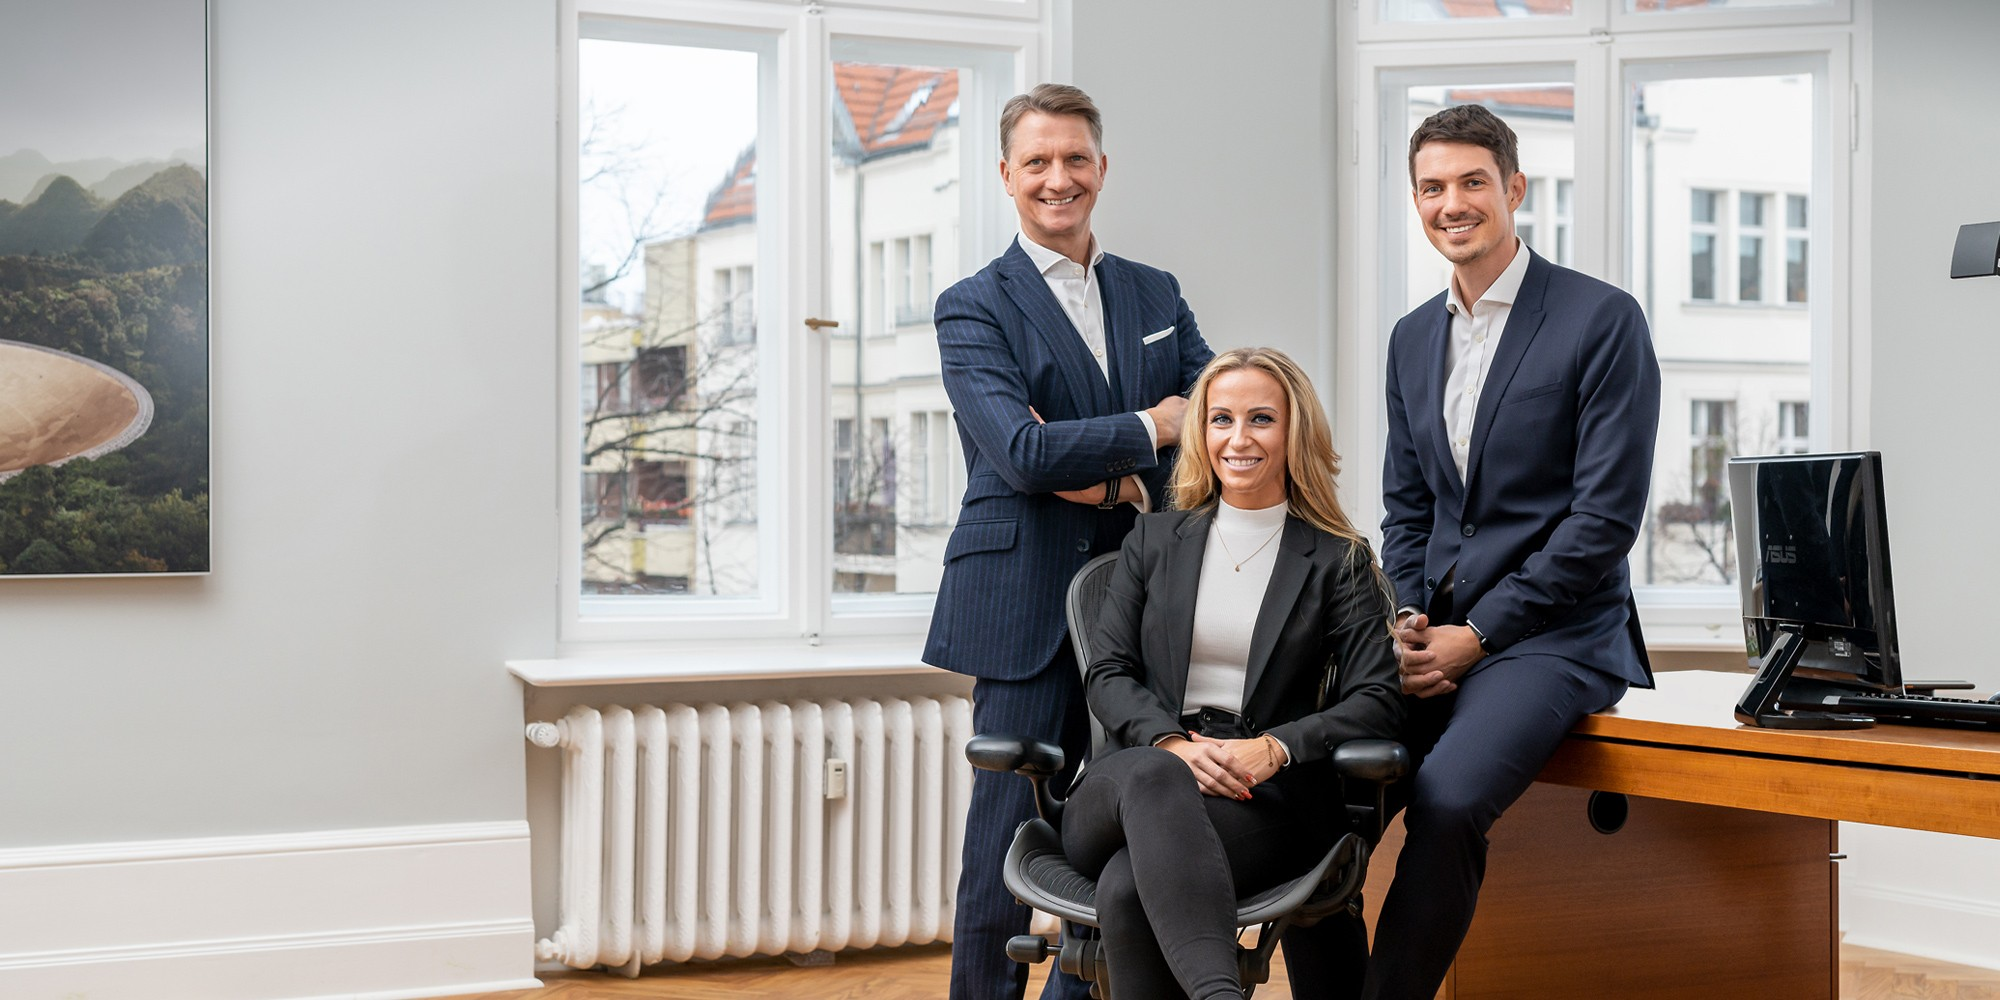 Klingsöhr Immobilien - 25 years of experience in the Berlin property market